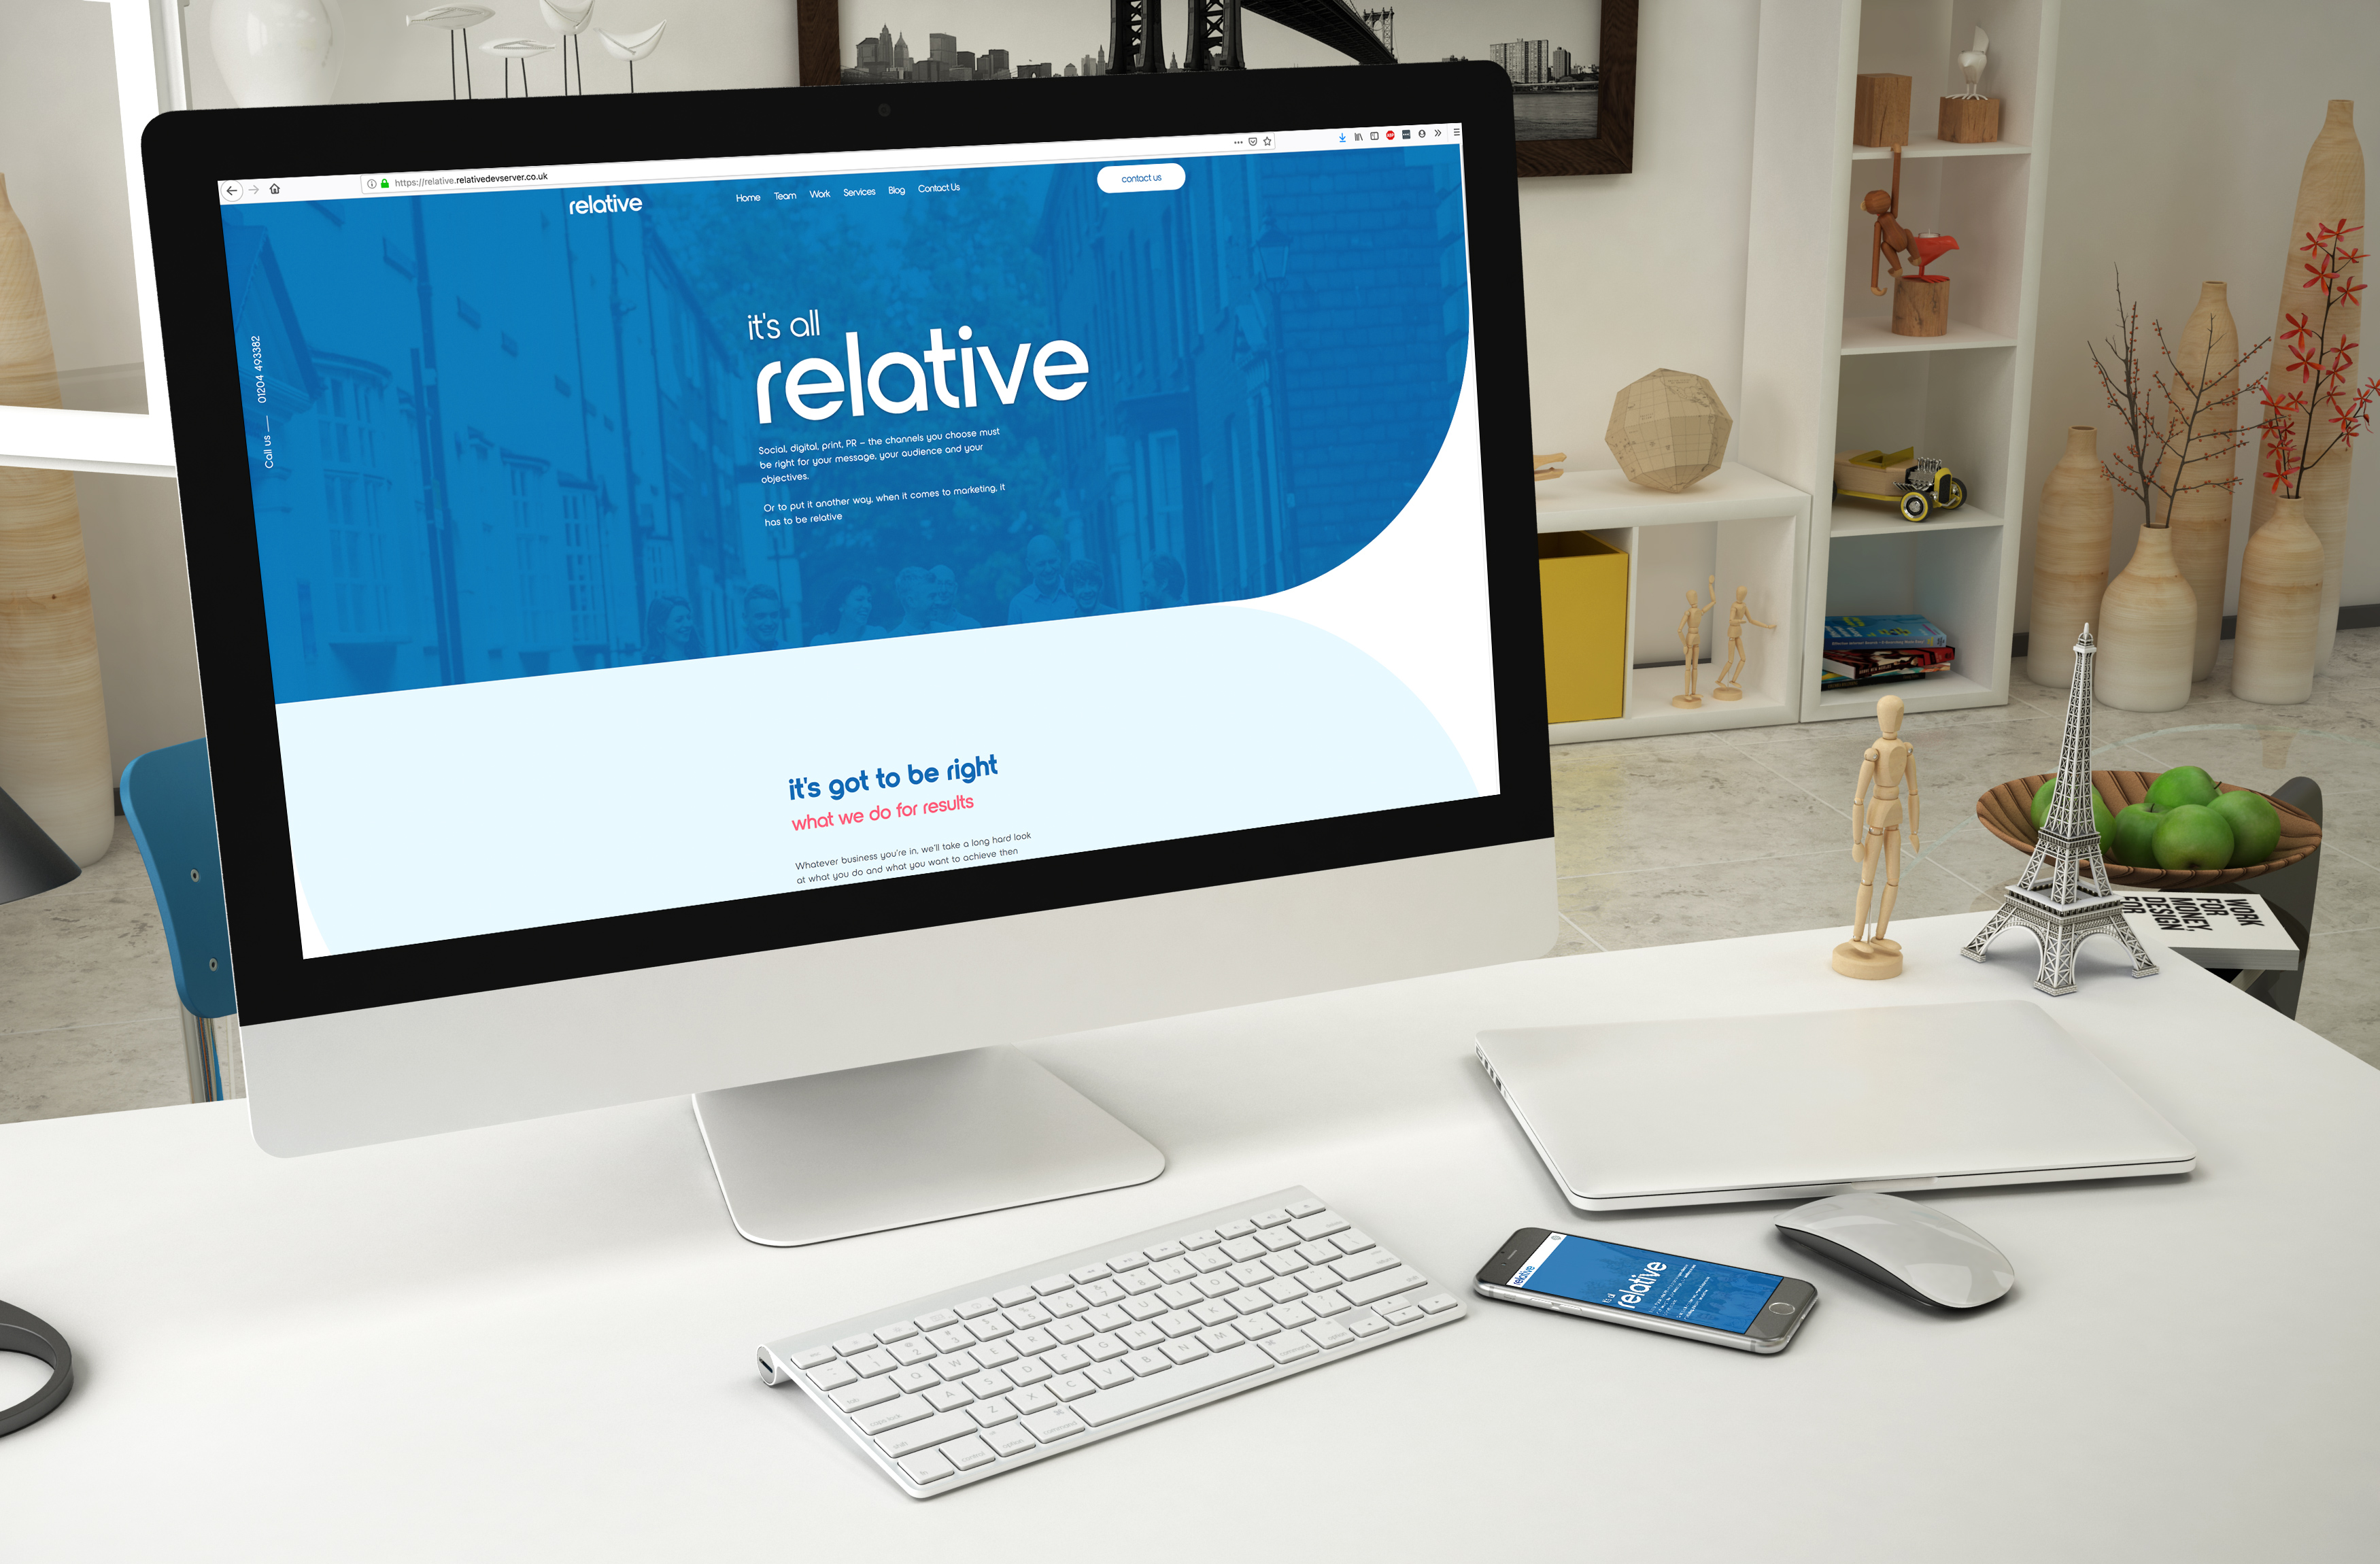 relative marketing website on an apple mac in a living room